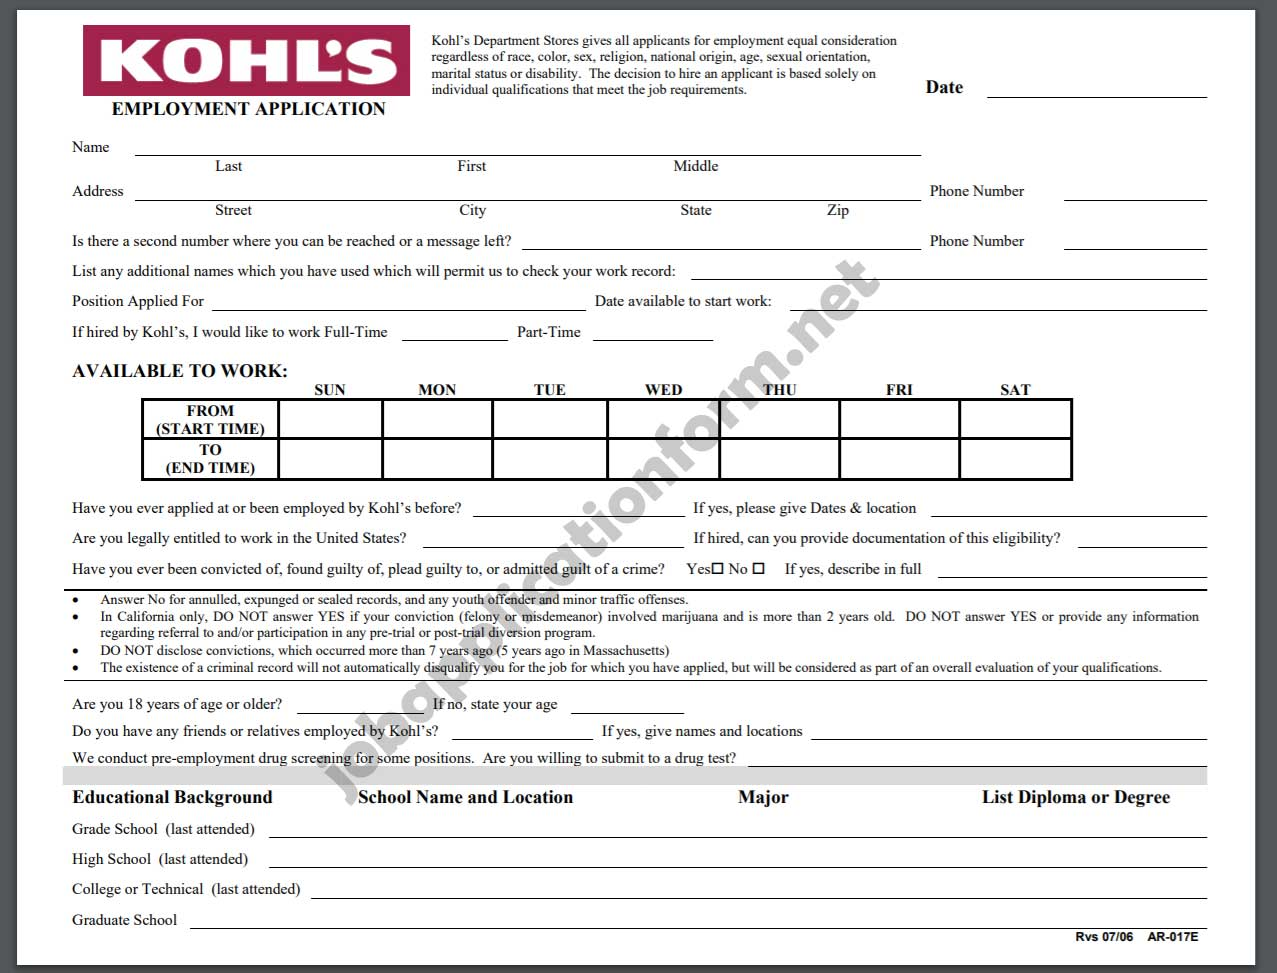 Kohl's Job Application Form pdf